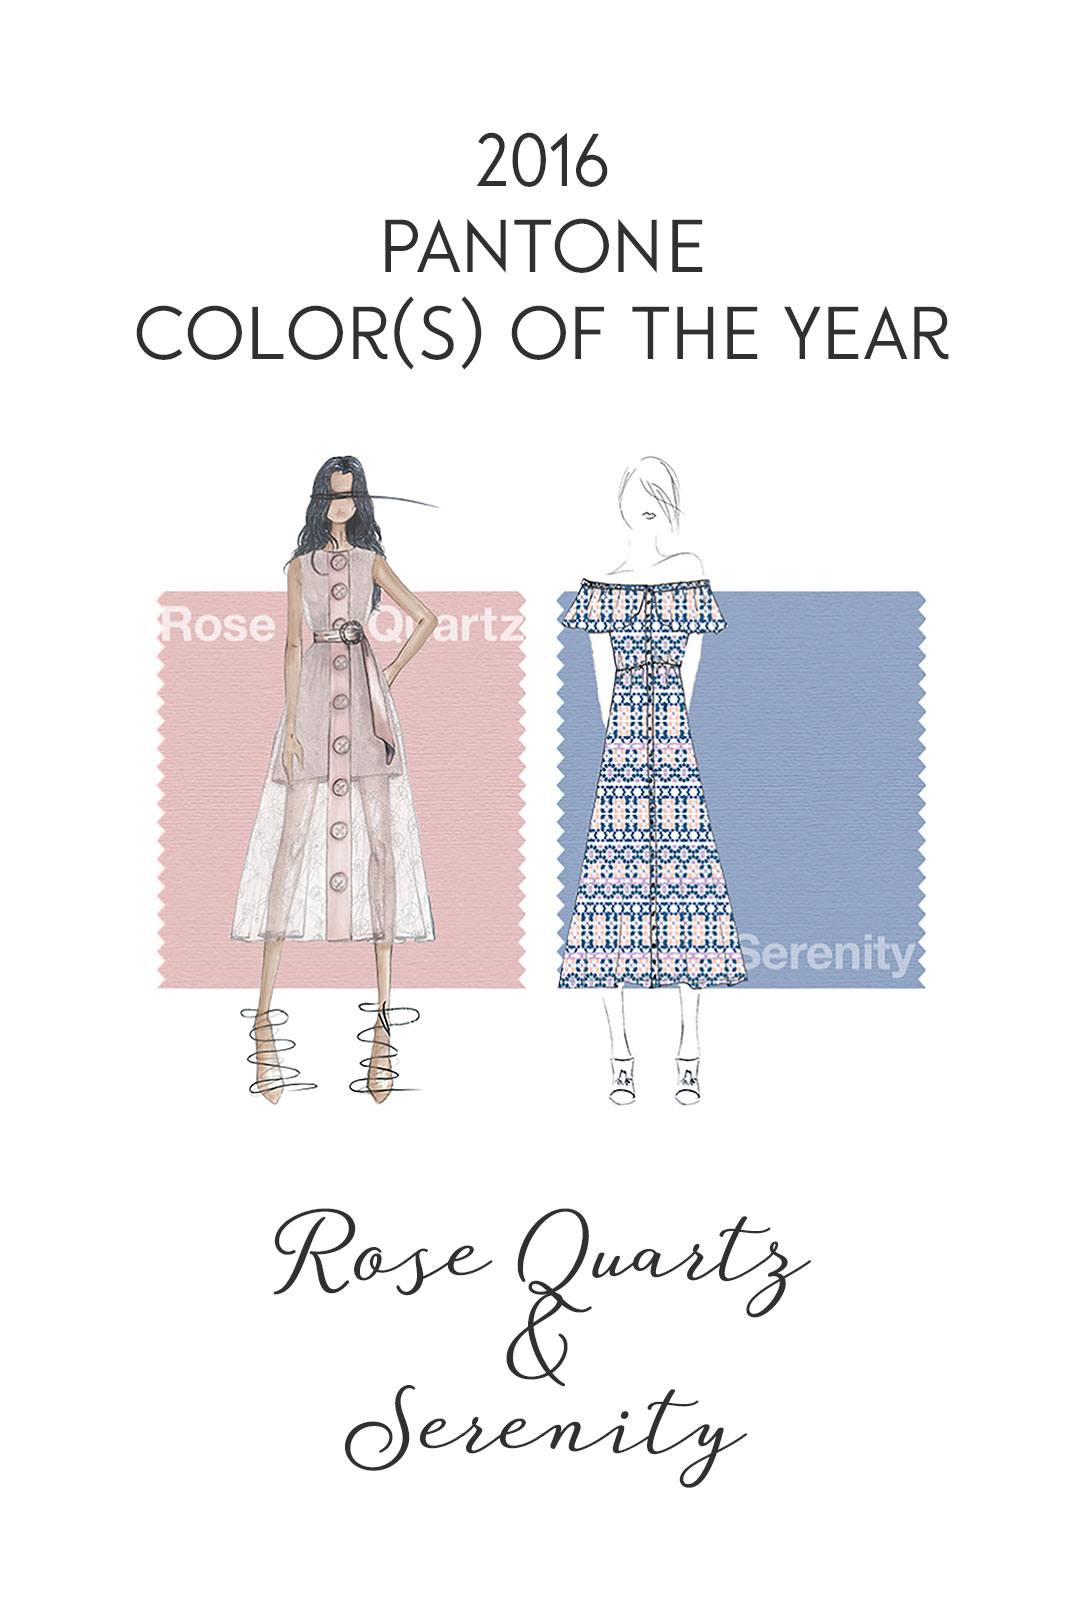 Pantone Color of the Year 2016 Rose Quartz & Serenity - Carrie Loves Blog